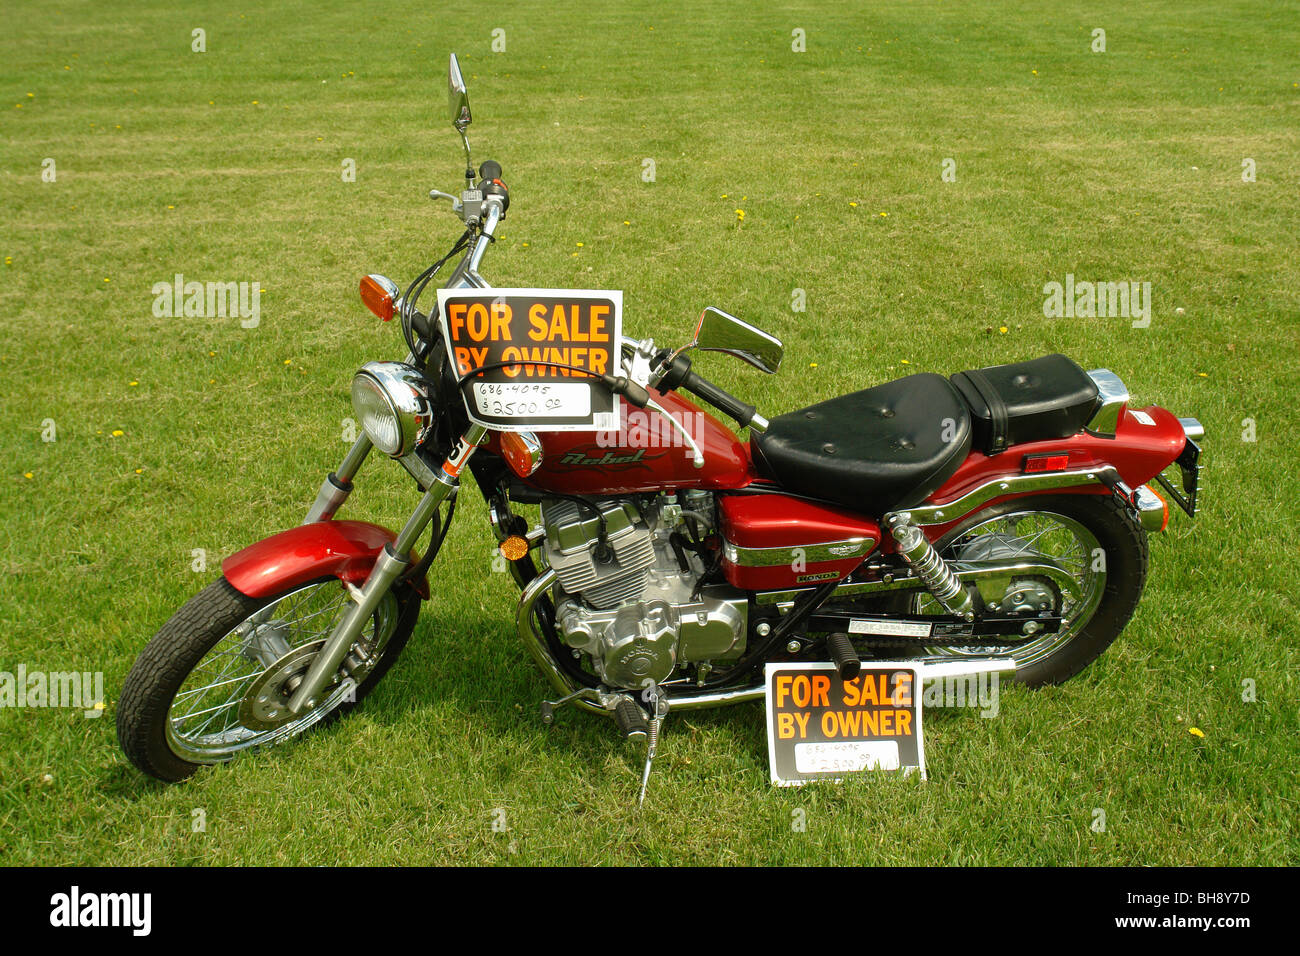 Ajd64346 Motorcycle For Sale By Owner In Front Yard Va Virginia